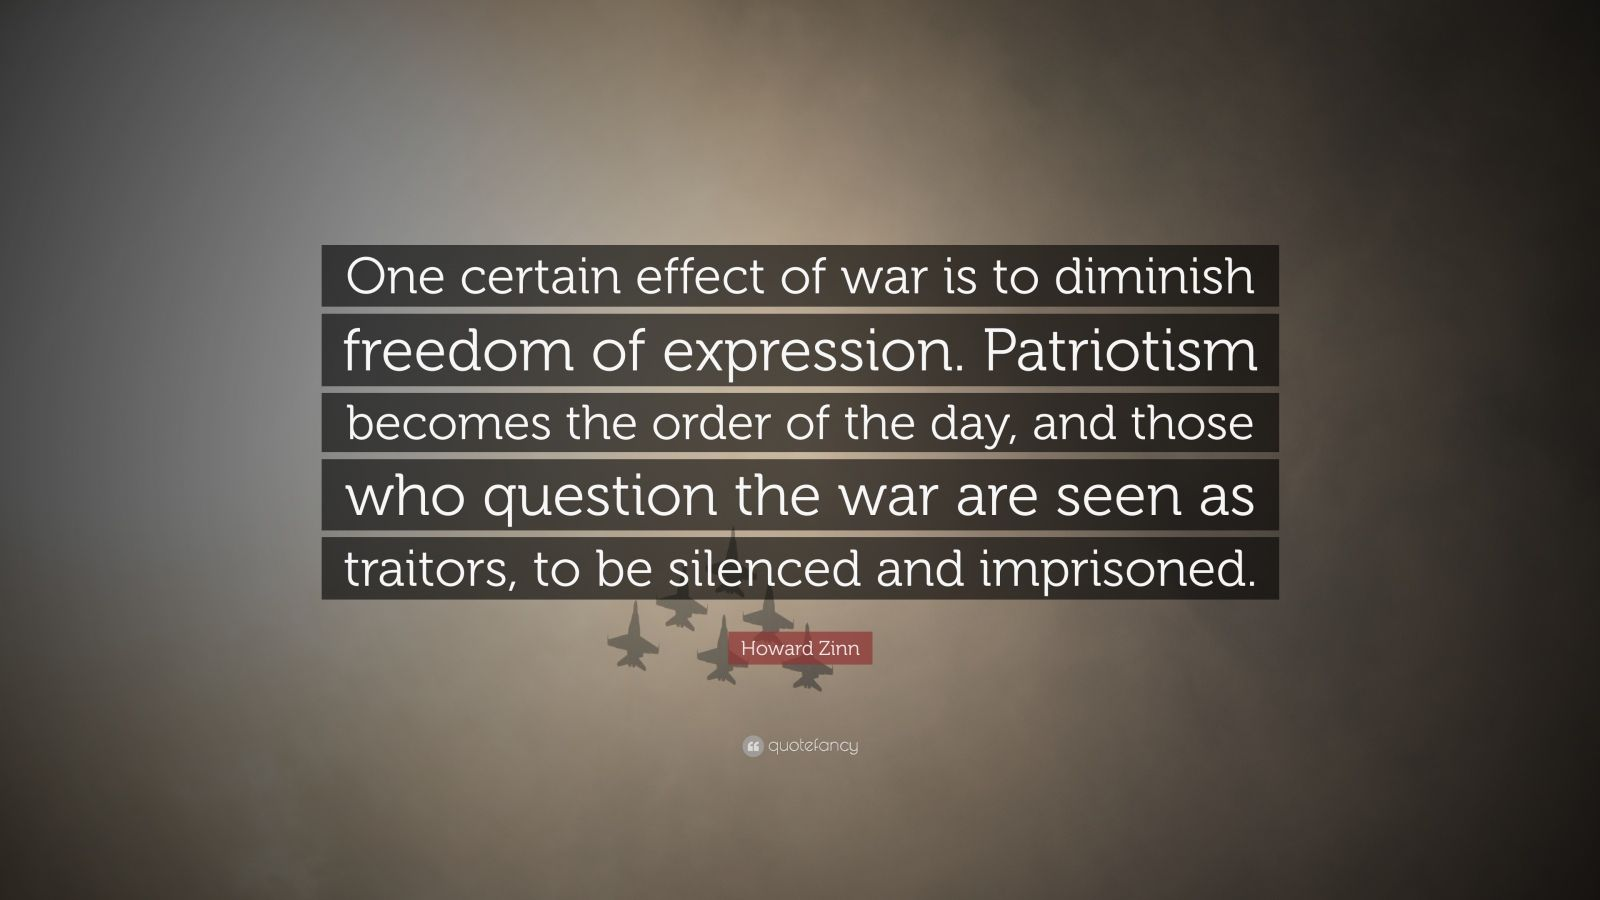 """Howard Zinn Quote: """"One certain effect of war is to diminish freedom of expression. Patriotism becomes the order of the day, and those who question the war are seen as traitors, to be silenced and imprisoned."""""""